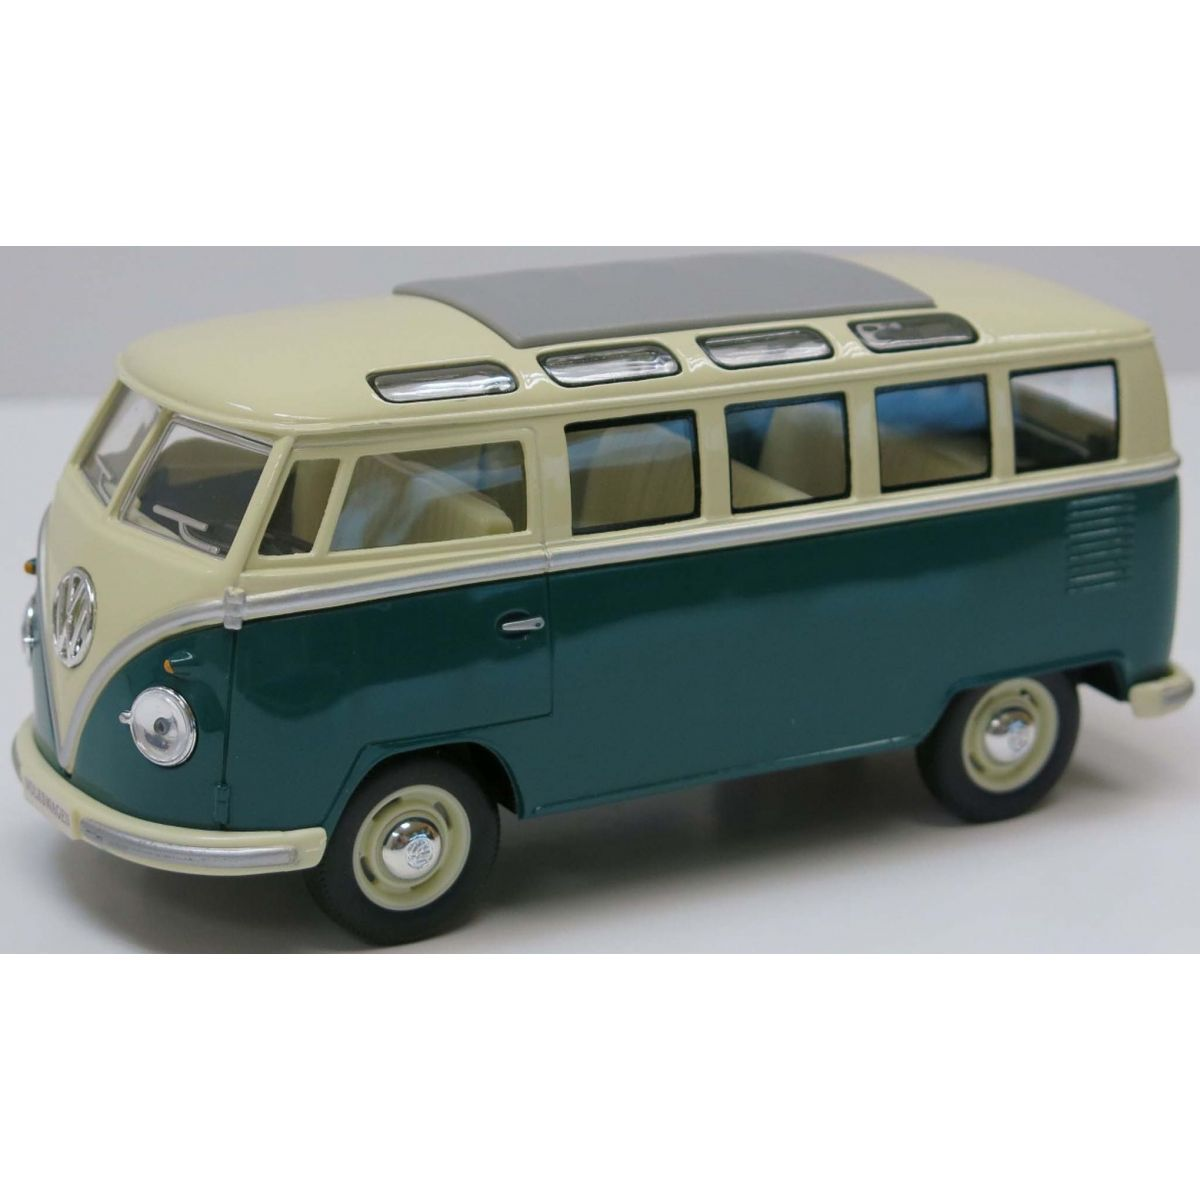 HM Studio VW Classical Bus 1962 zelený